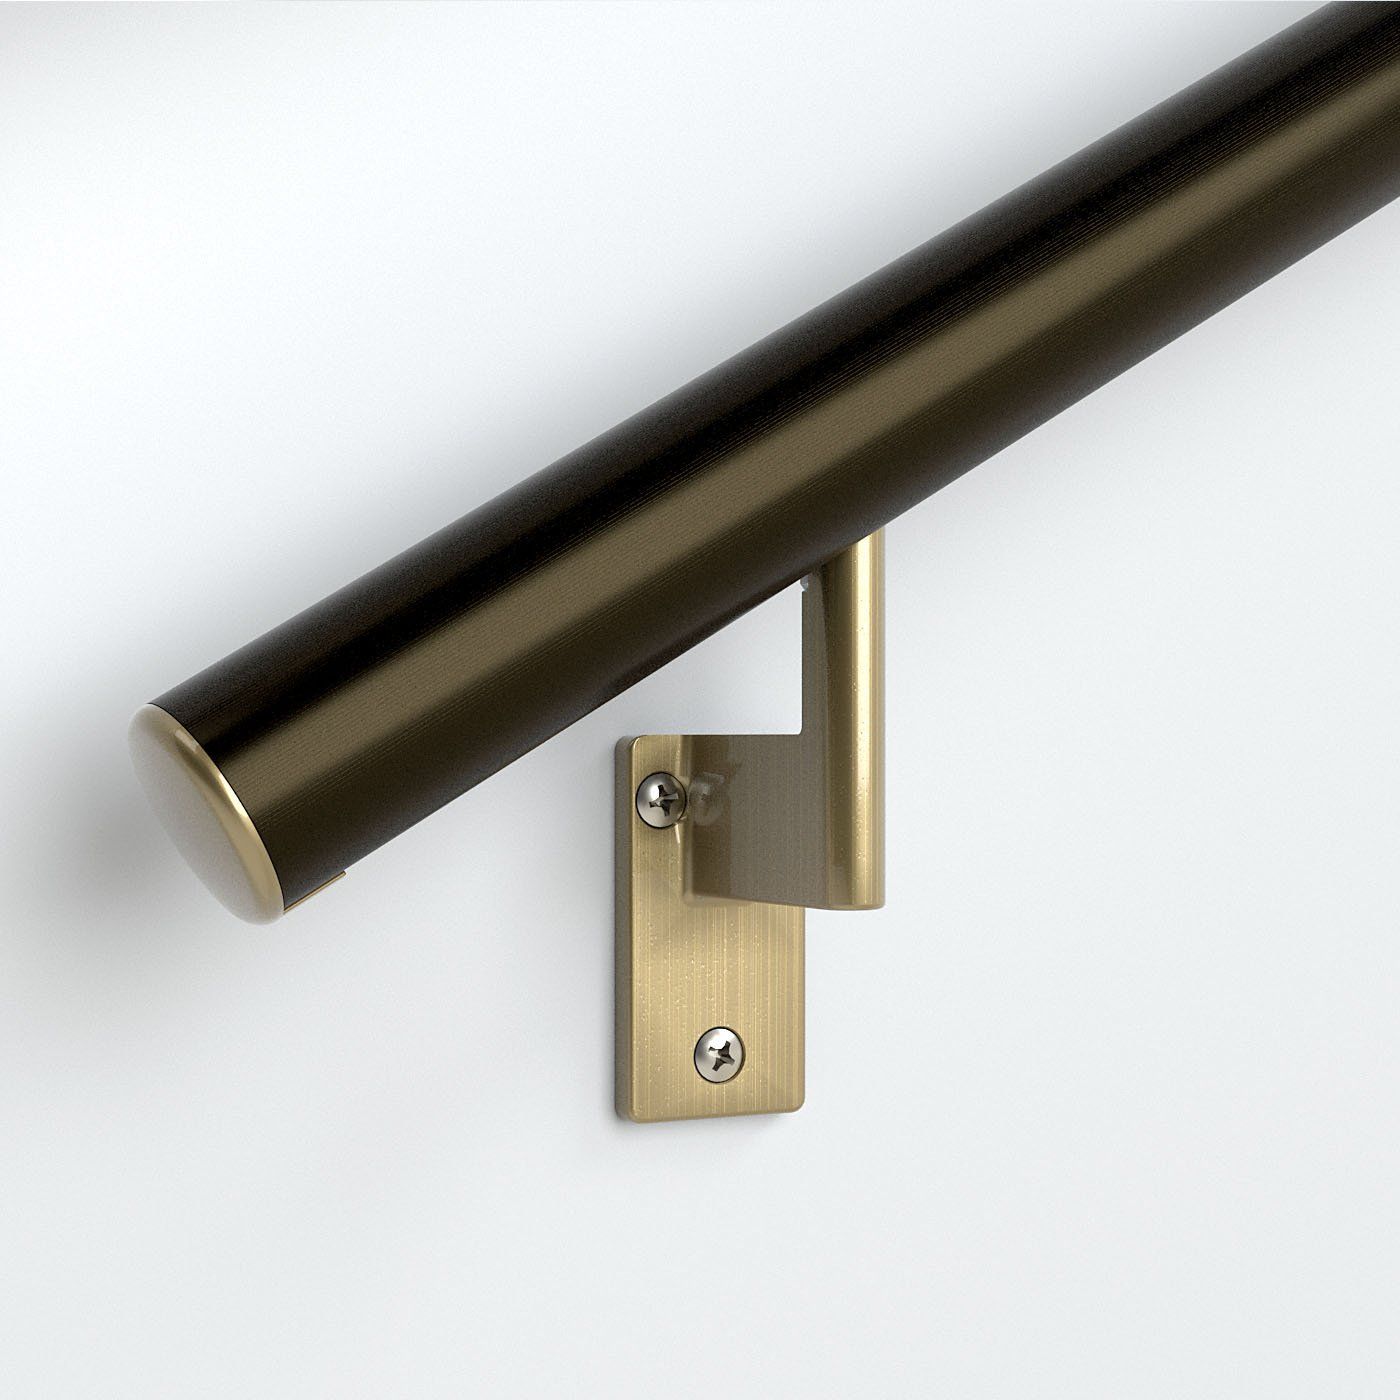 4ft. Handrail - Architectural Bronze Anodized Aluminum with 3 Antique Brass Wall Brackets and Endcaps - 1.6'' Round - Complete Kit by Promenaid